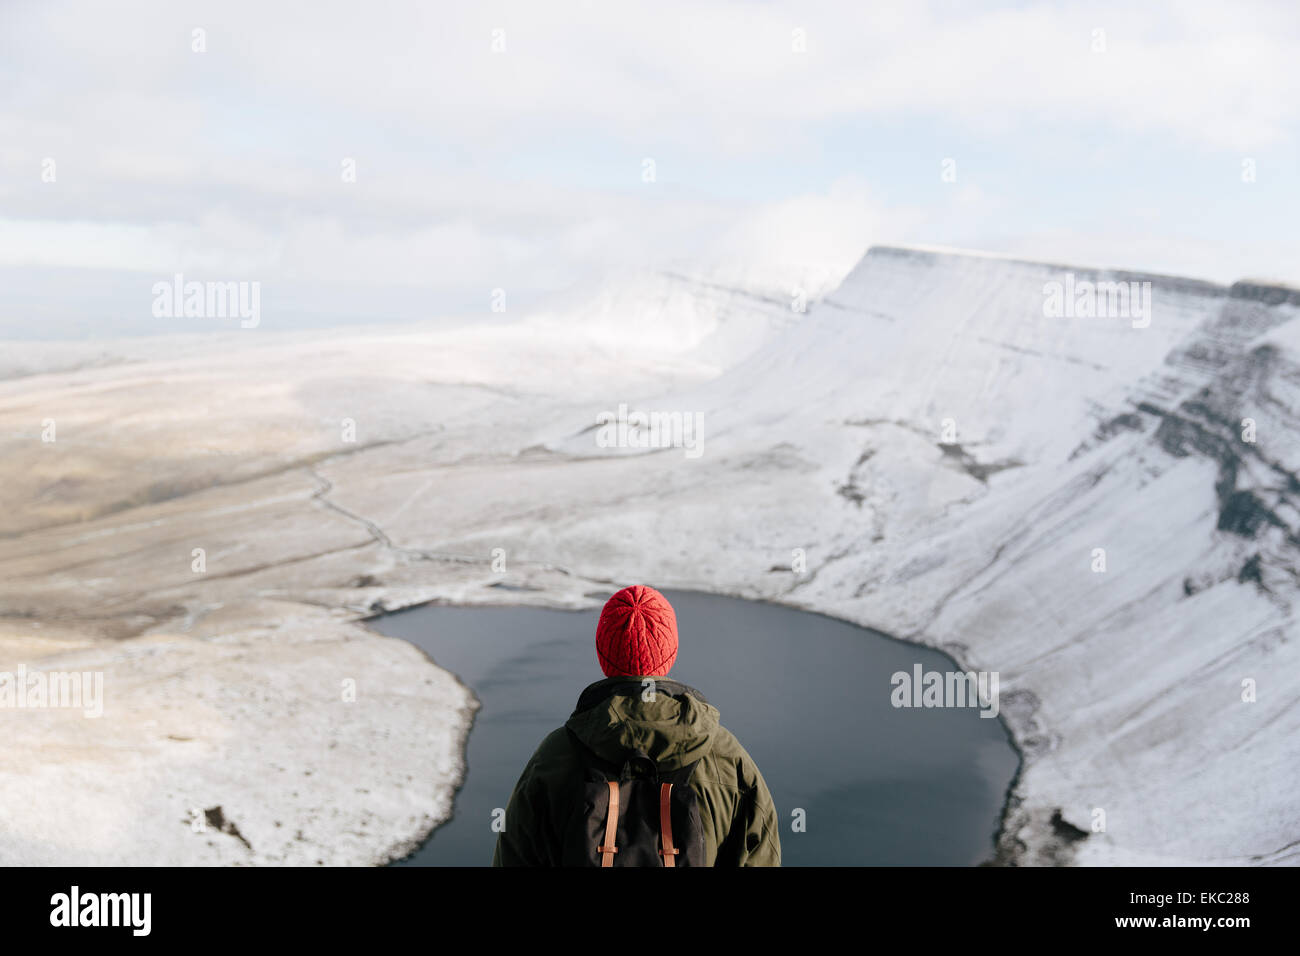 Rear view of man looking at Llyn y Fan Fach, The Brecon Beacons, Wales, UK - Stock Image